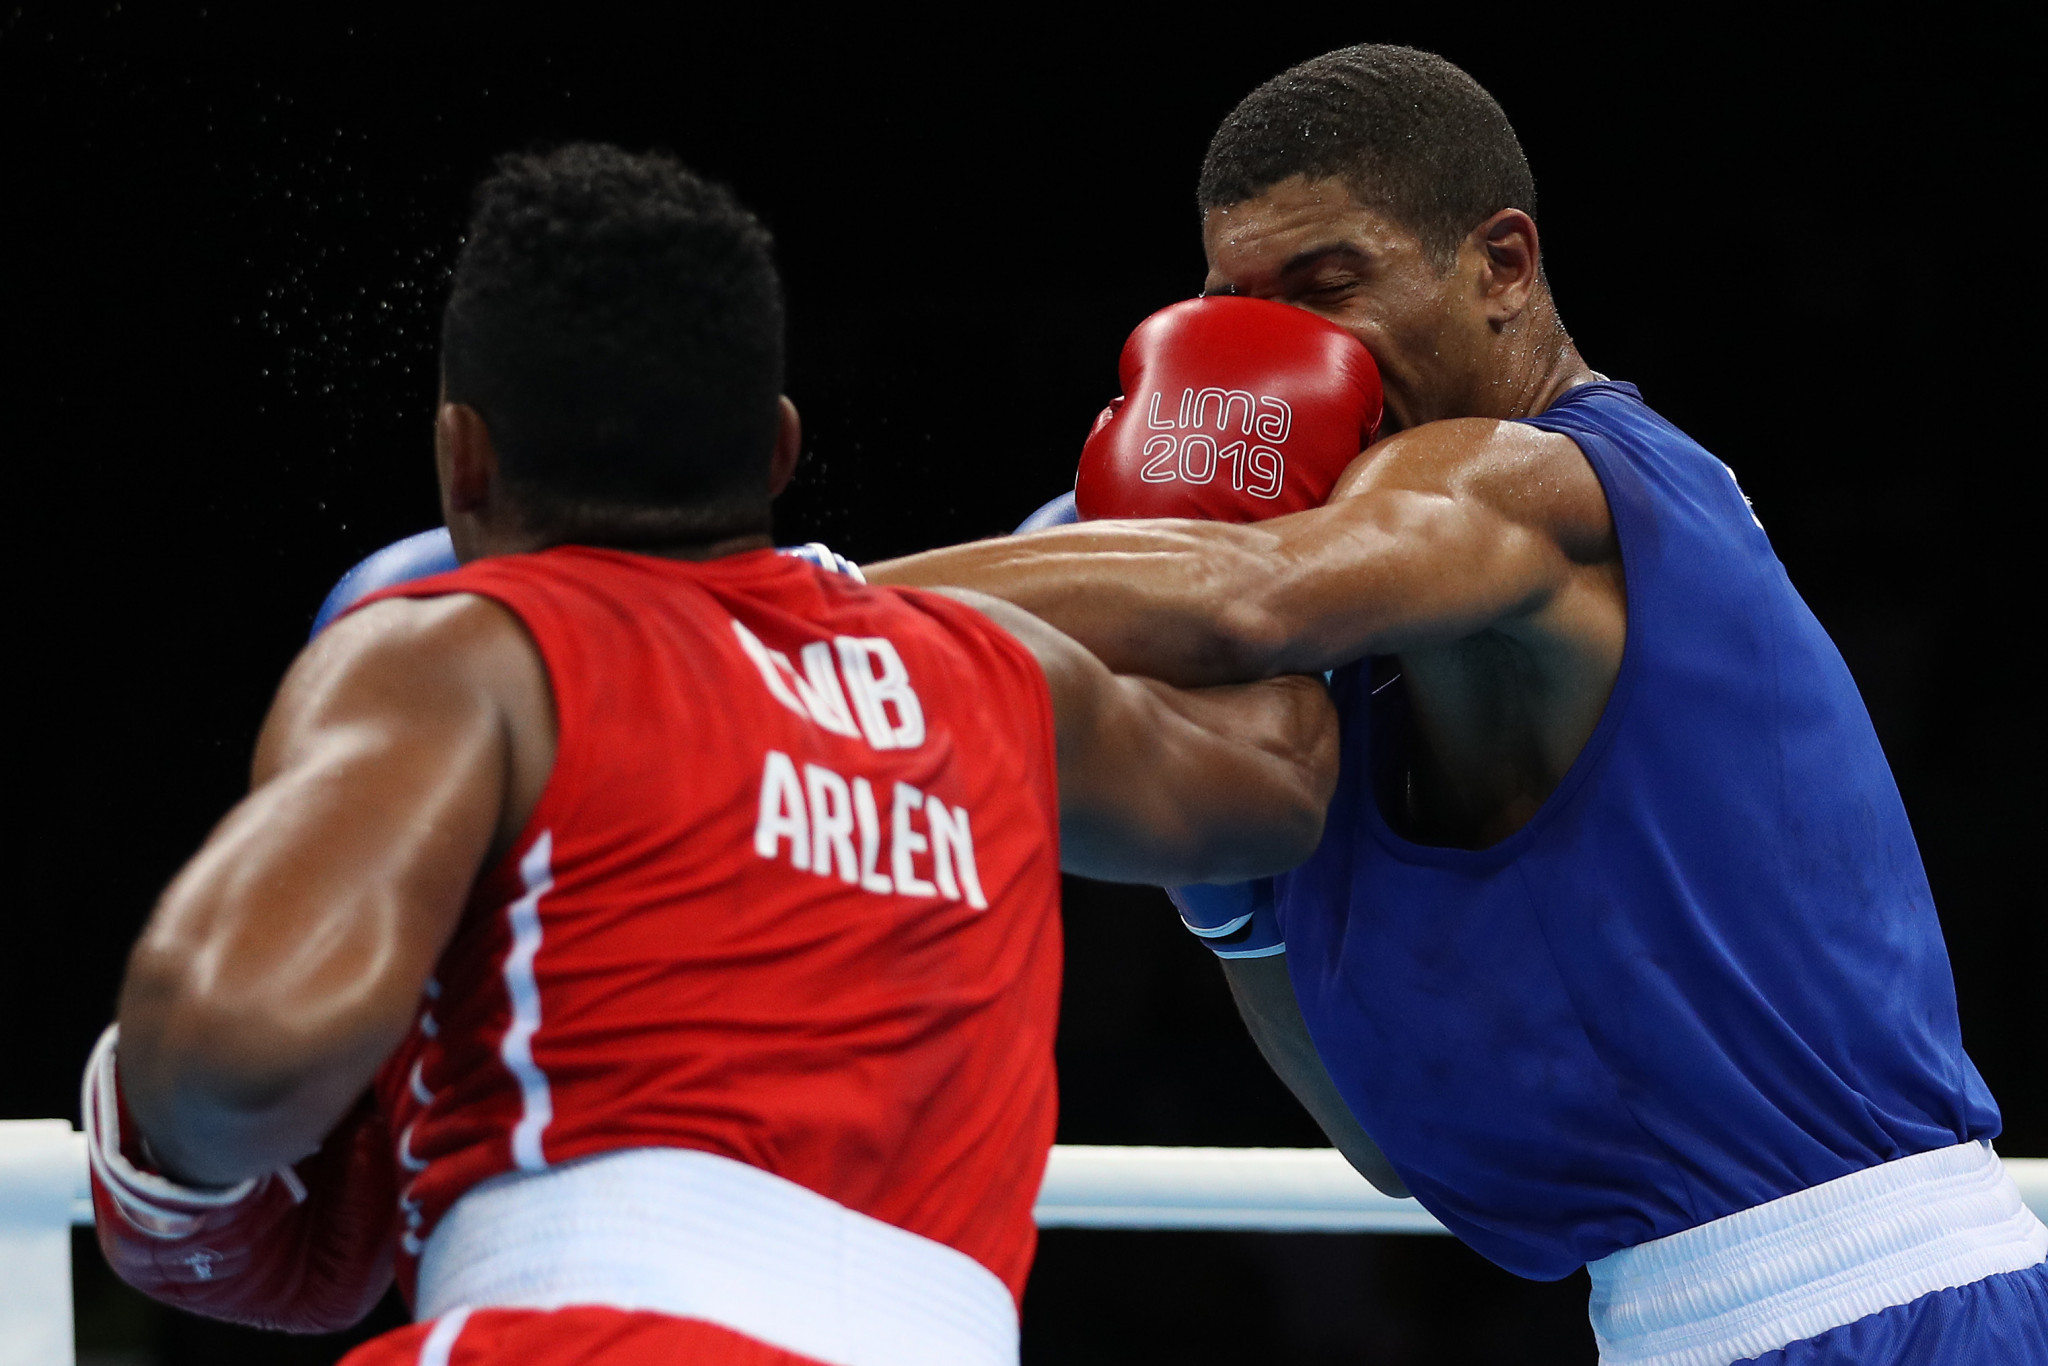 López continues bid to reclaim middleweight title with victory against Cedeno at AIBA World Championships